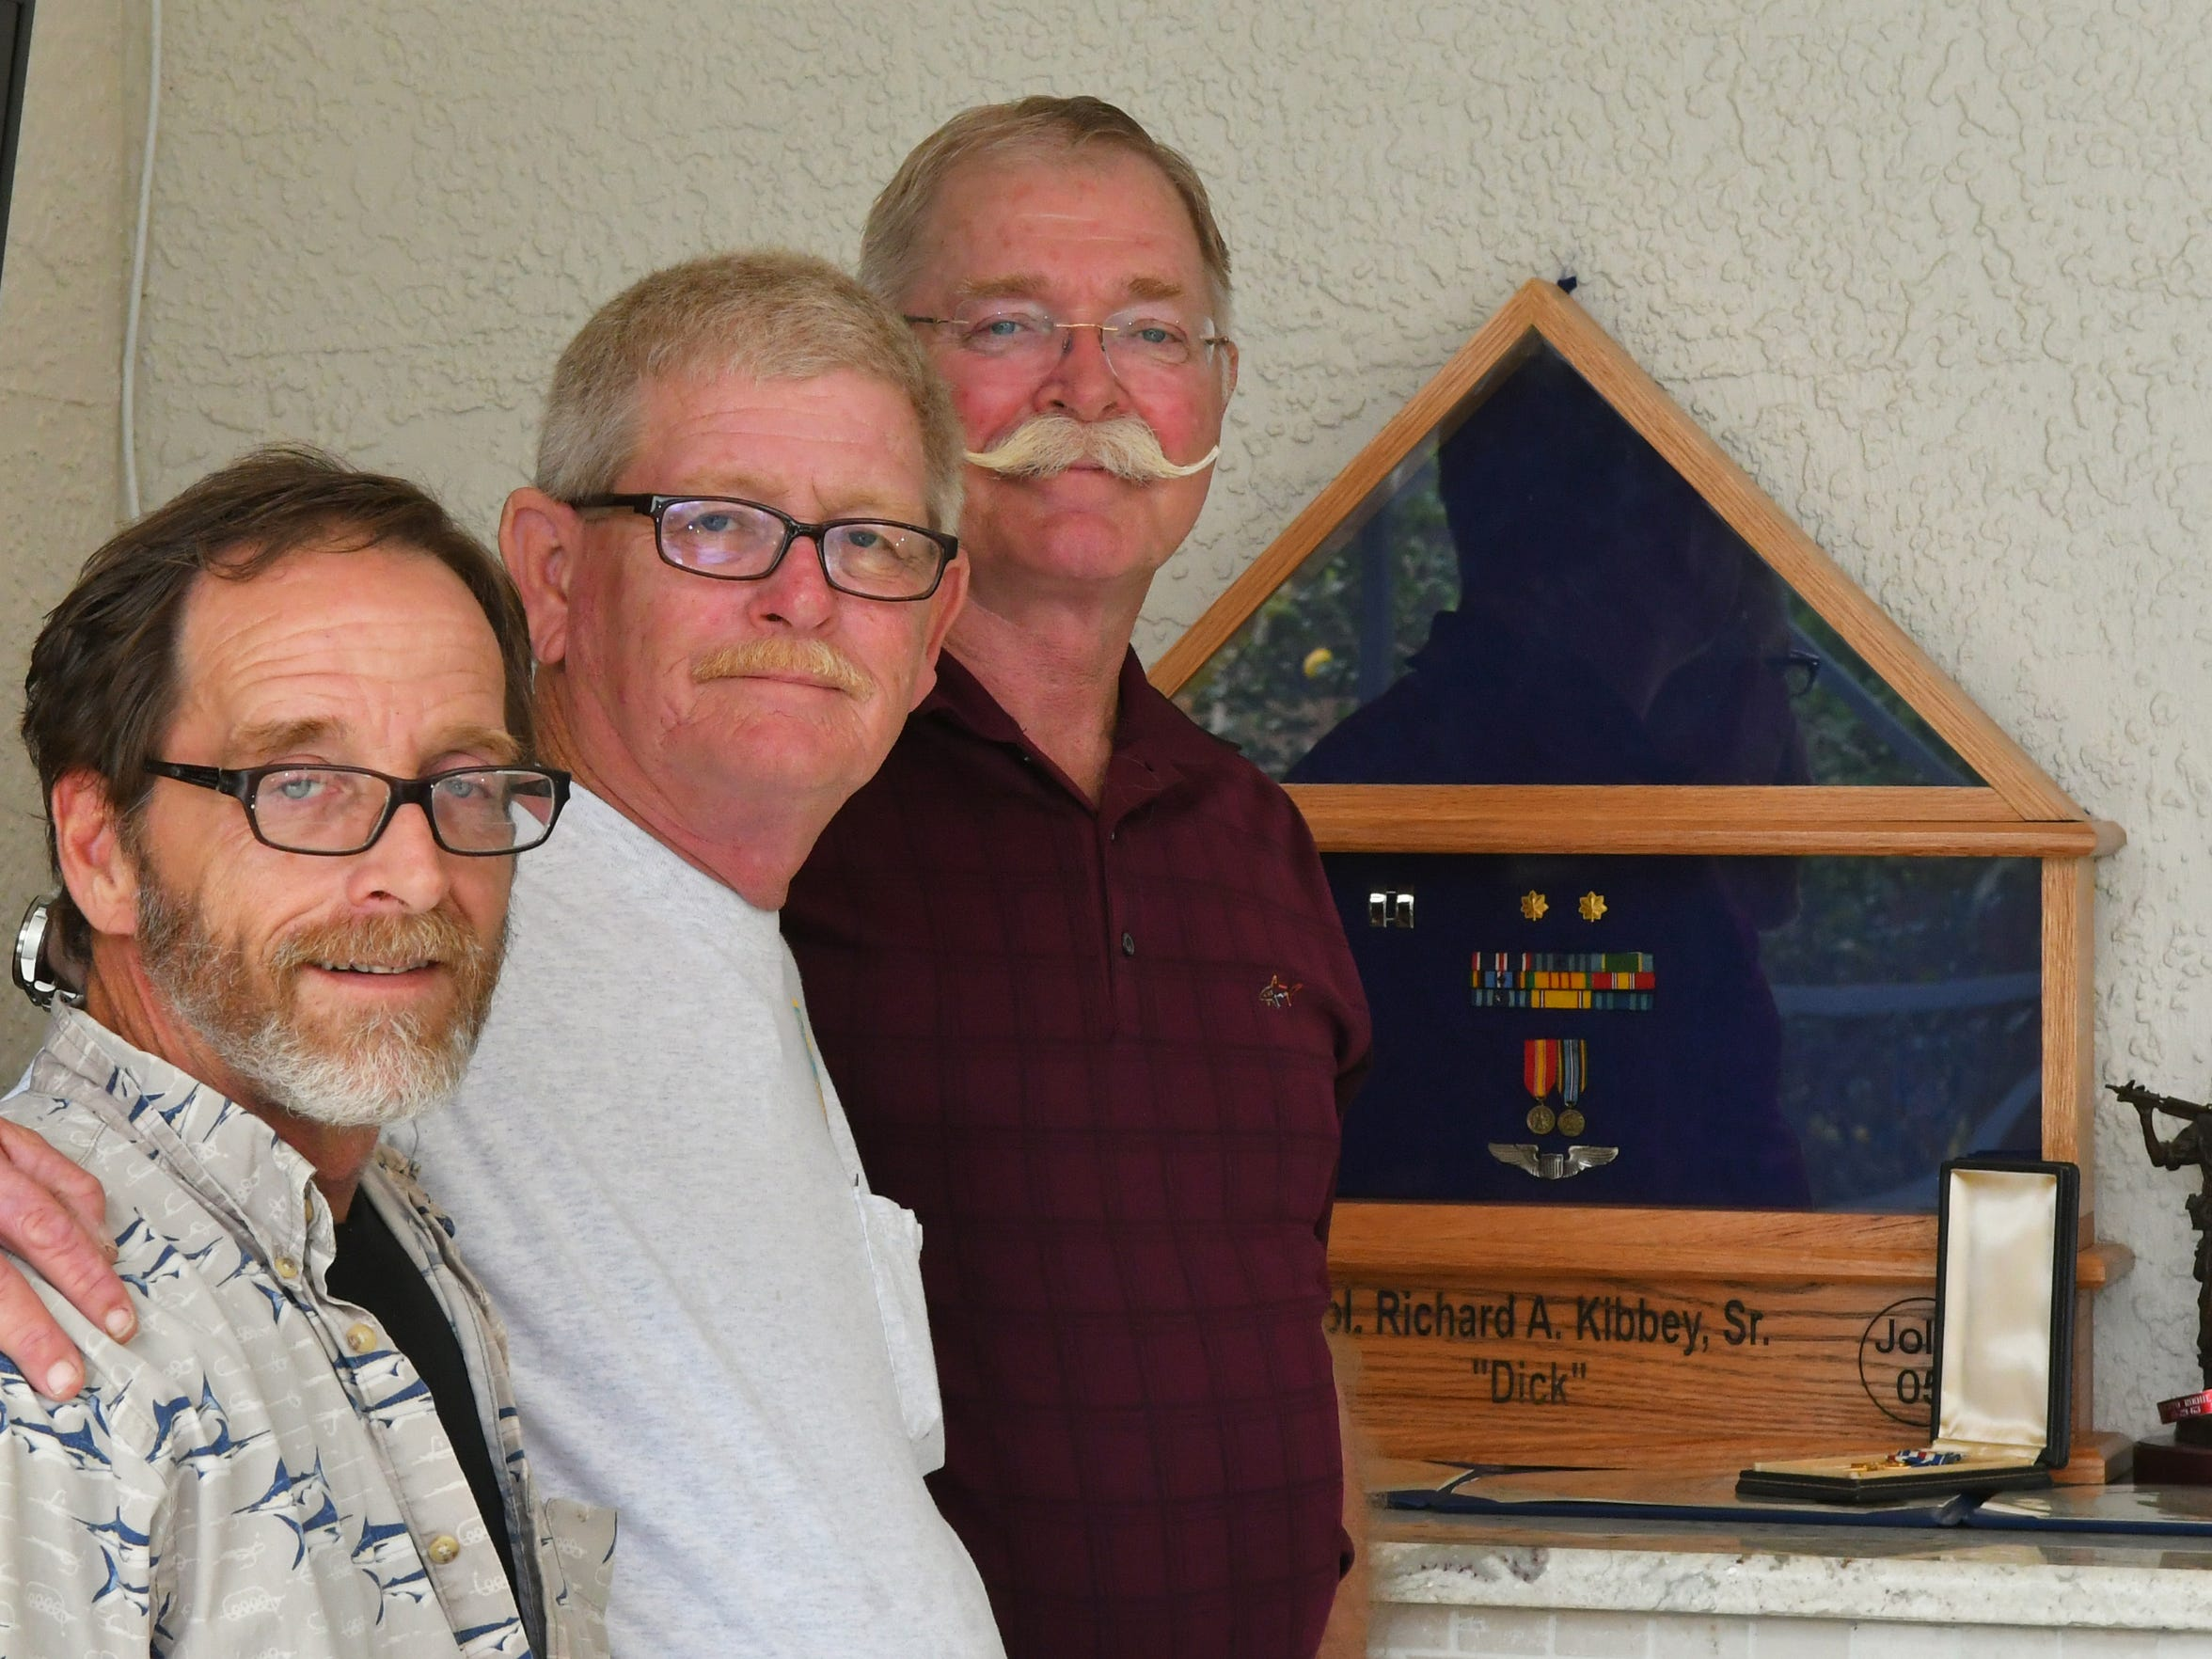 Col. Richard Kibbey's sons (left to right) John, 52, Dave, 58, and Rick, 63, stand by the modified flag box that will house their father's dog tags at Rick Kibbey's Viera home. Dave Kibbey built the oak flag box.